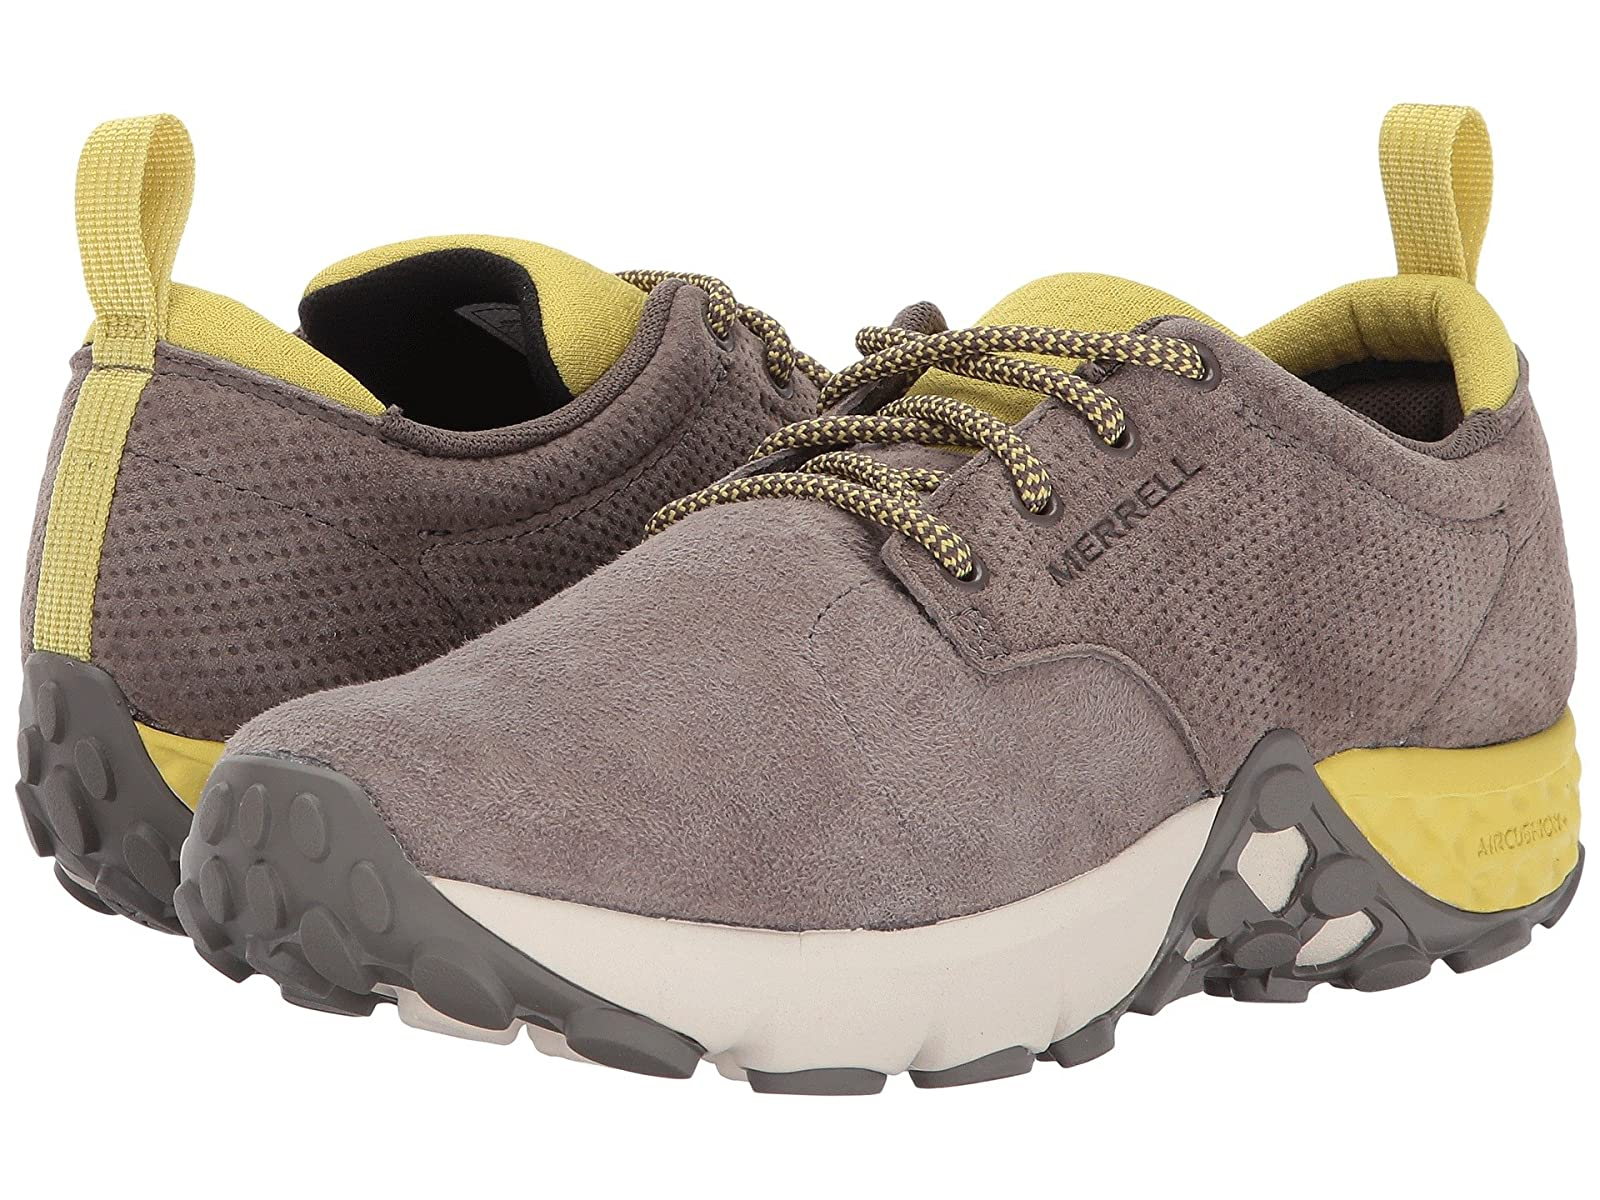 Merrell Jungle Lace AC+Cheap and distinctive eye-catching shoes